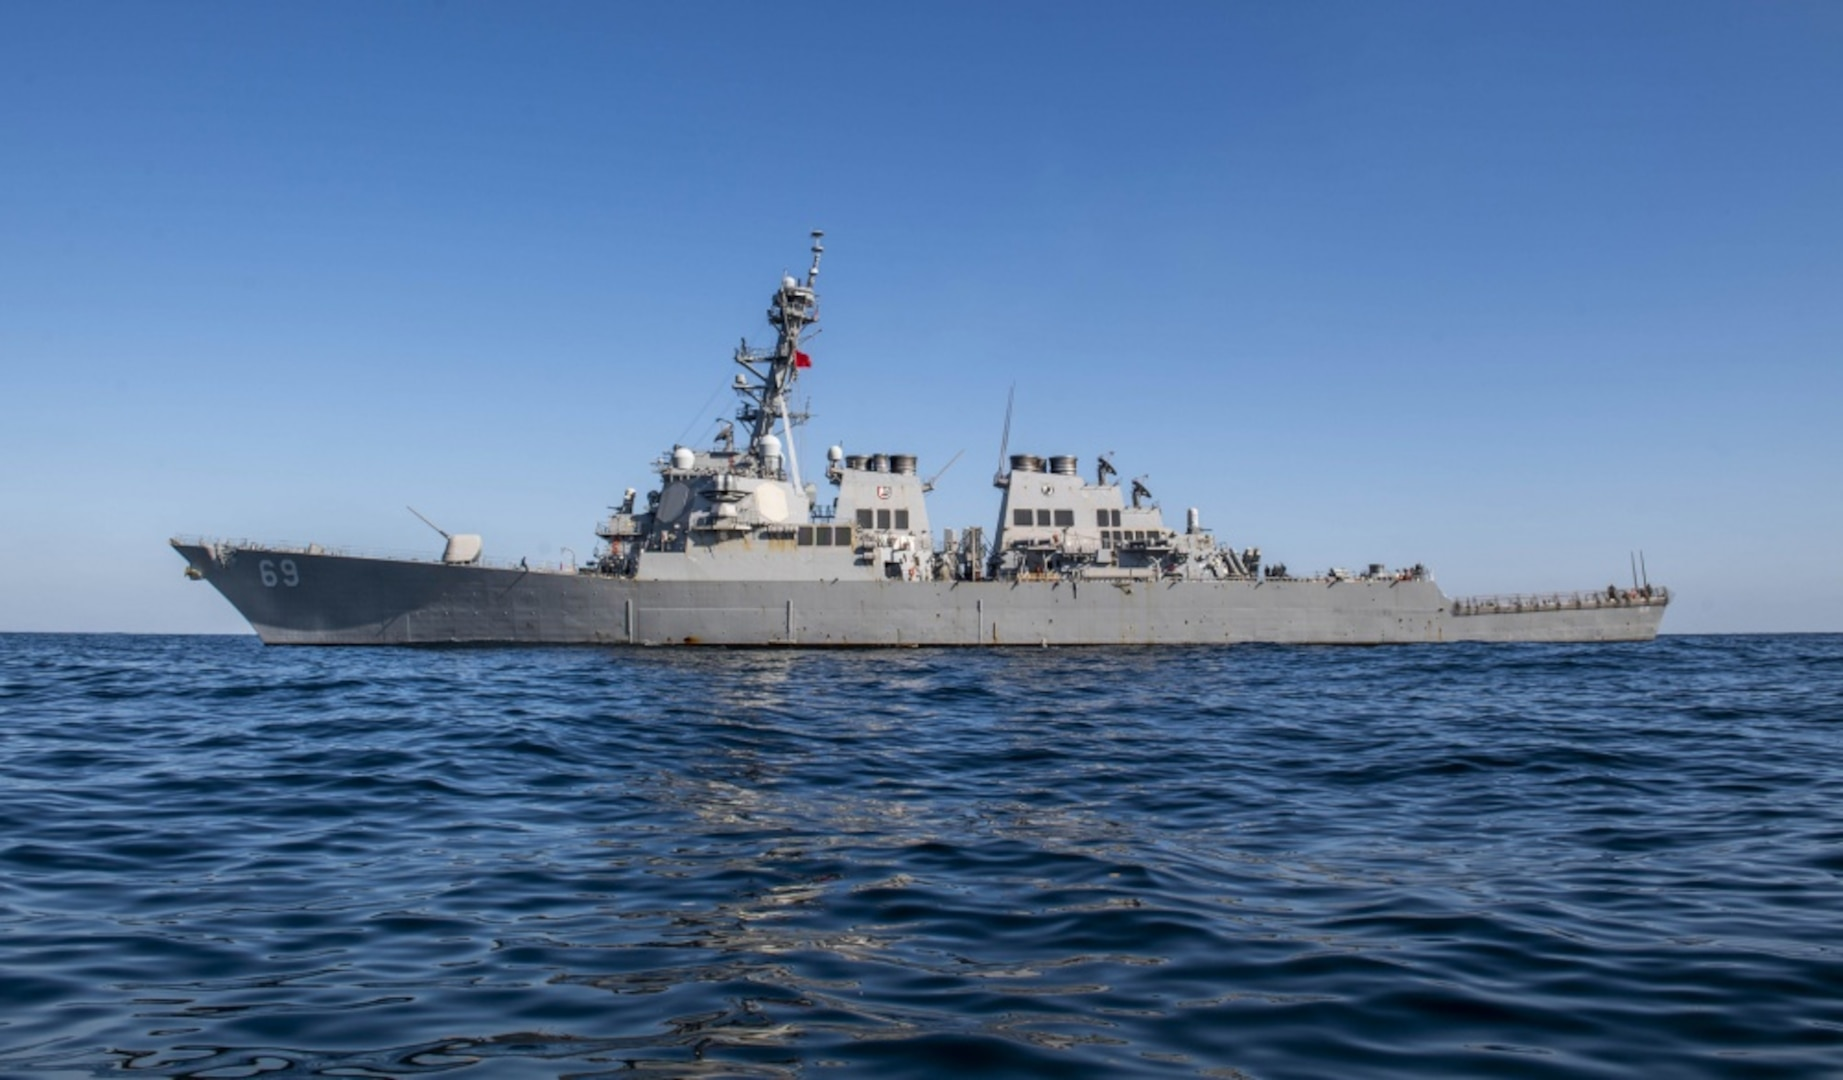 U.S. Navy and Japanese Maritime Forces Start Annual Exercise